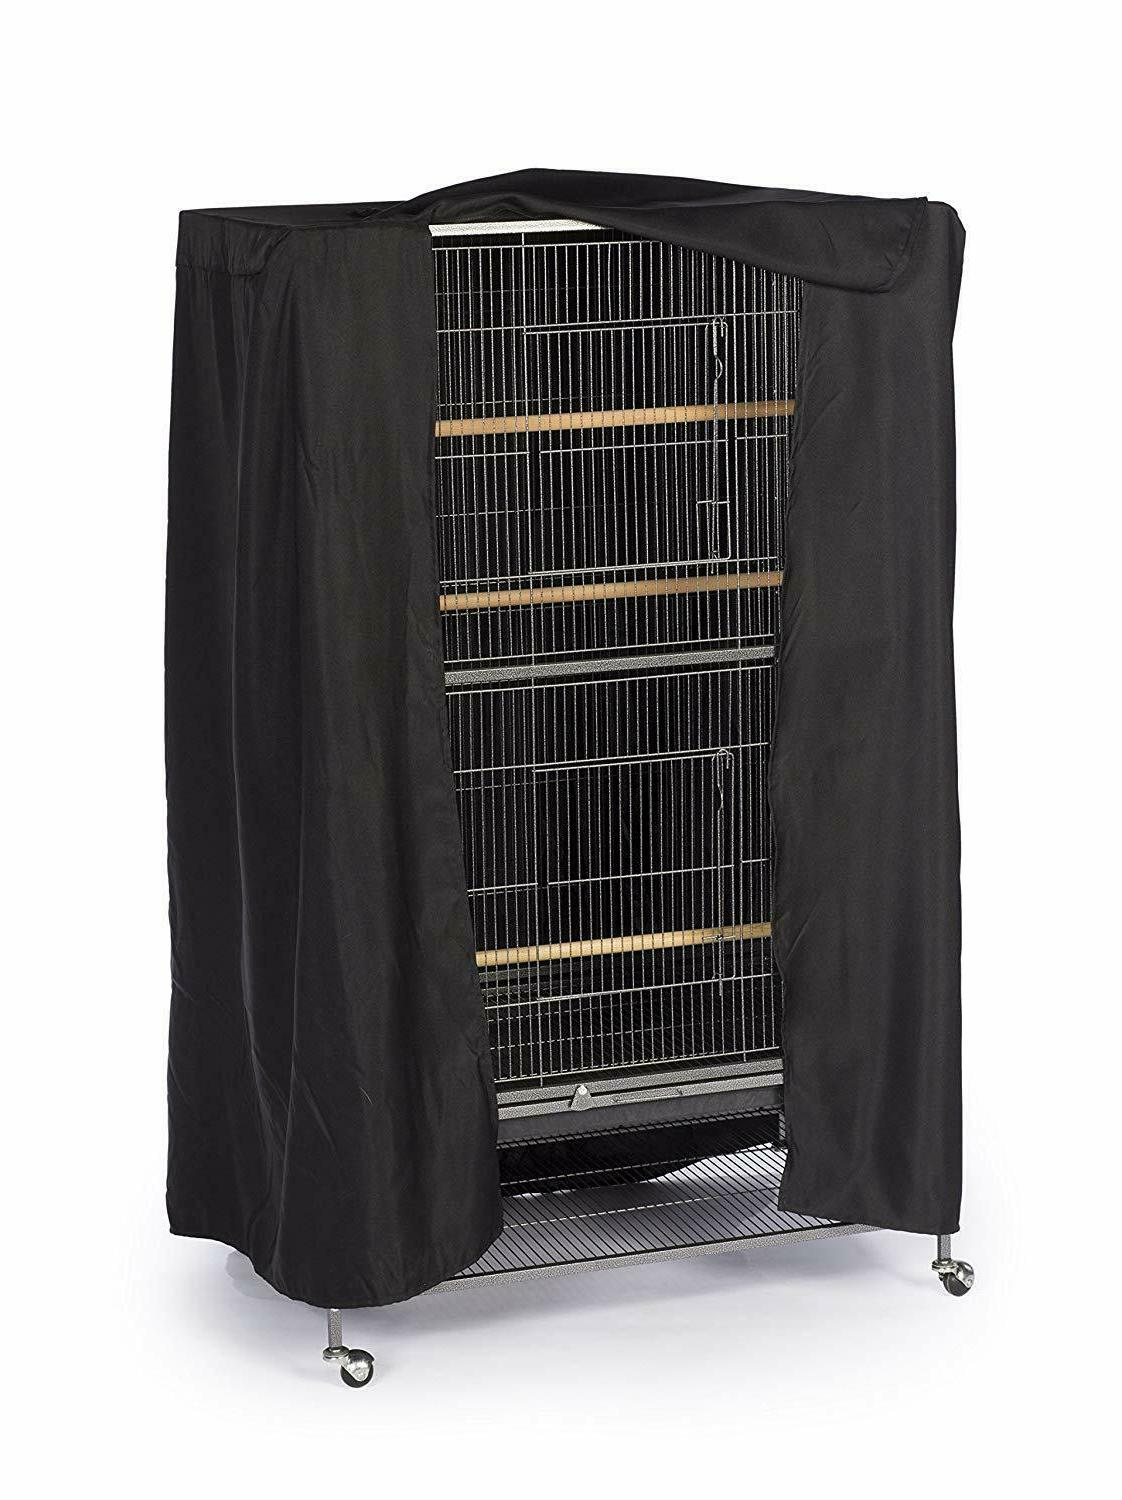 Prevue Good Night Cage Cover, Large, Black